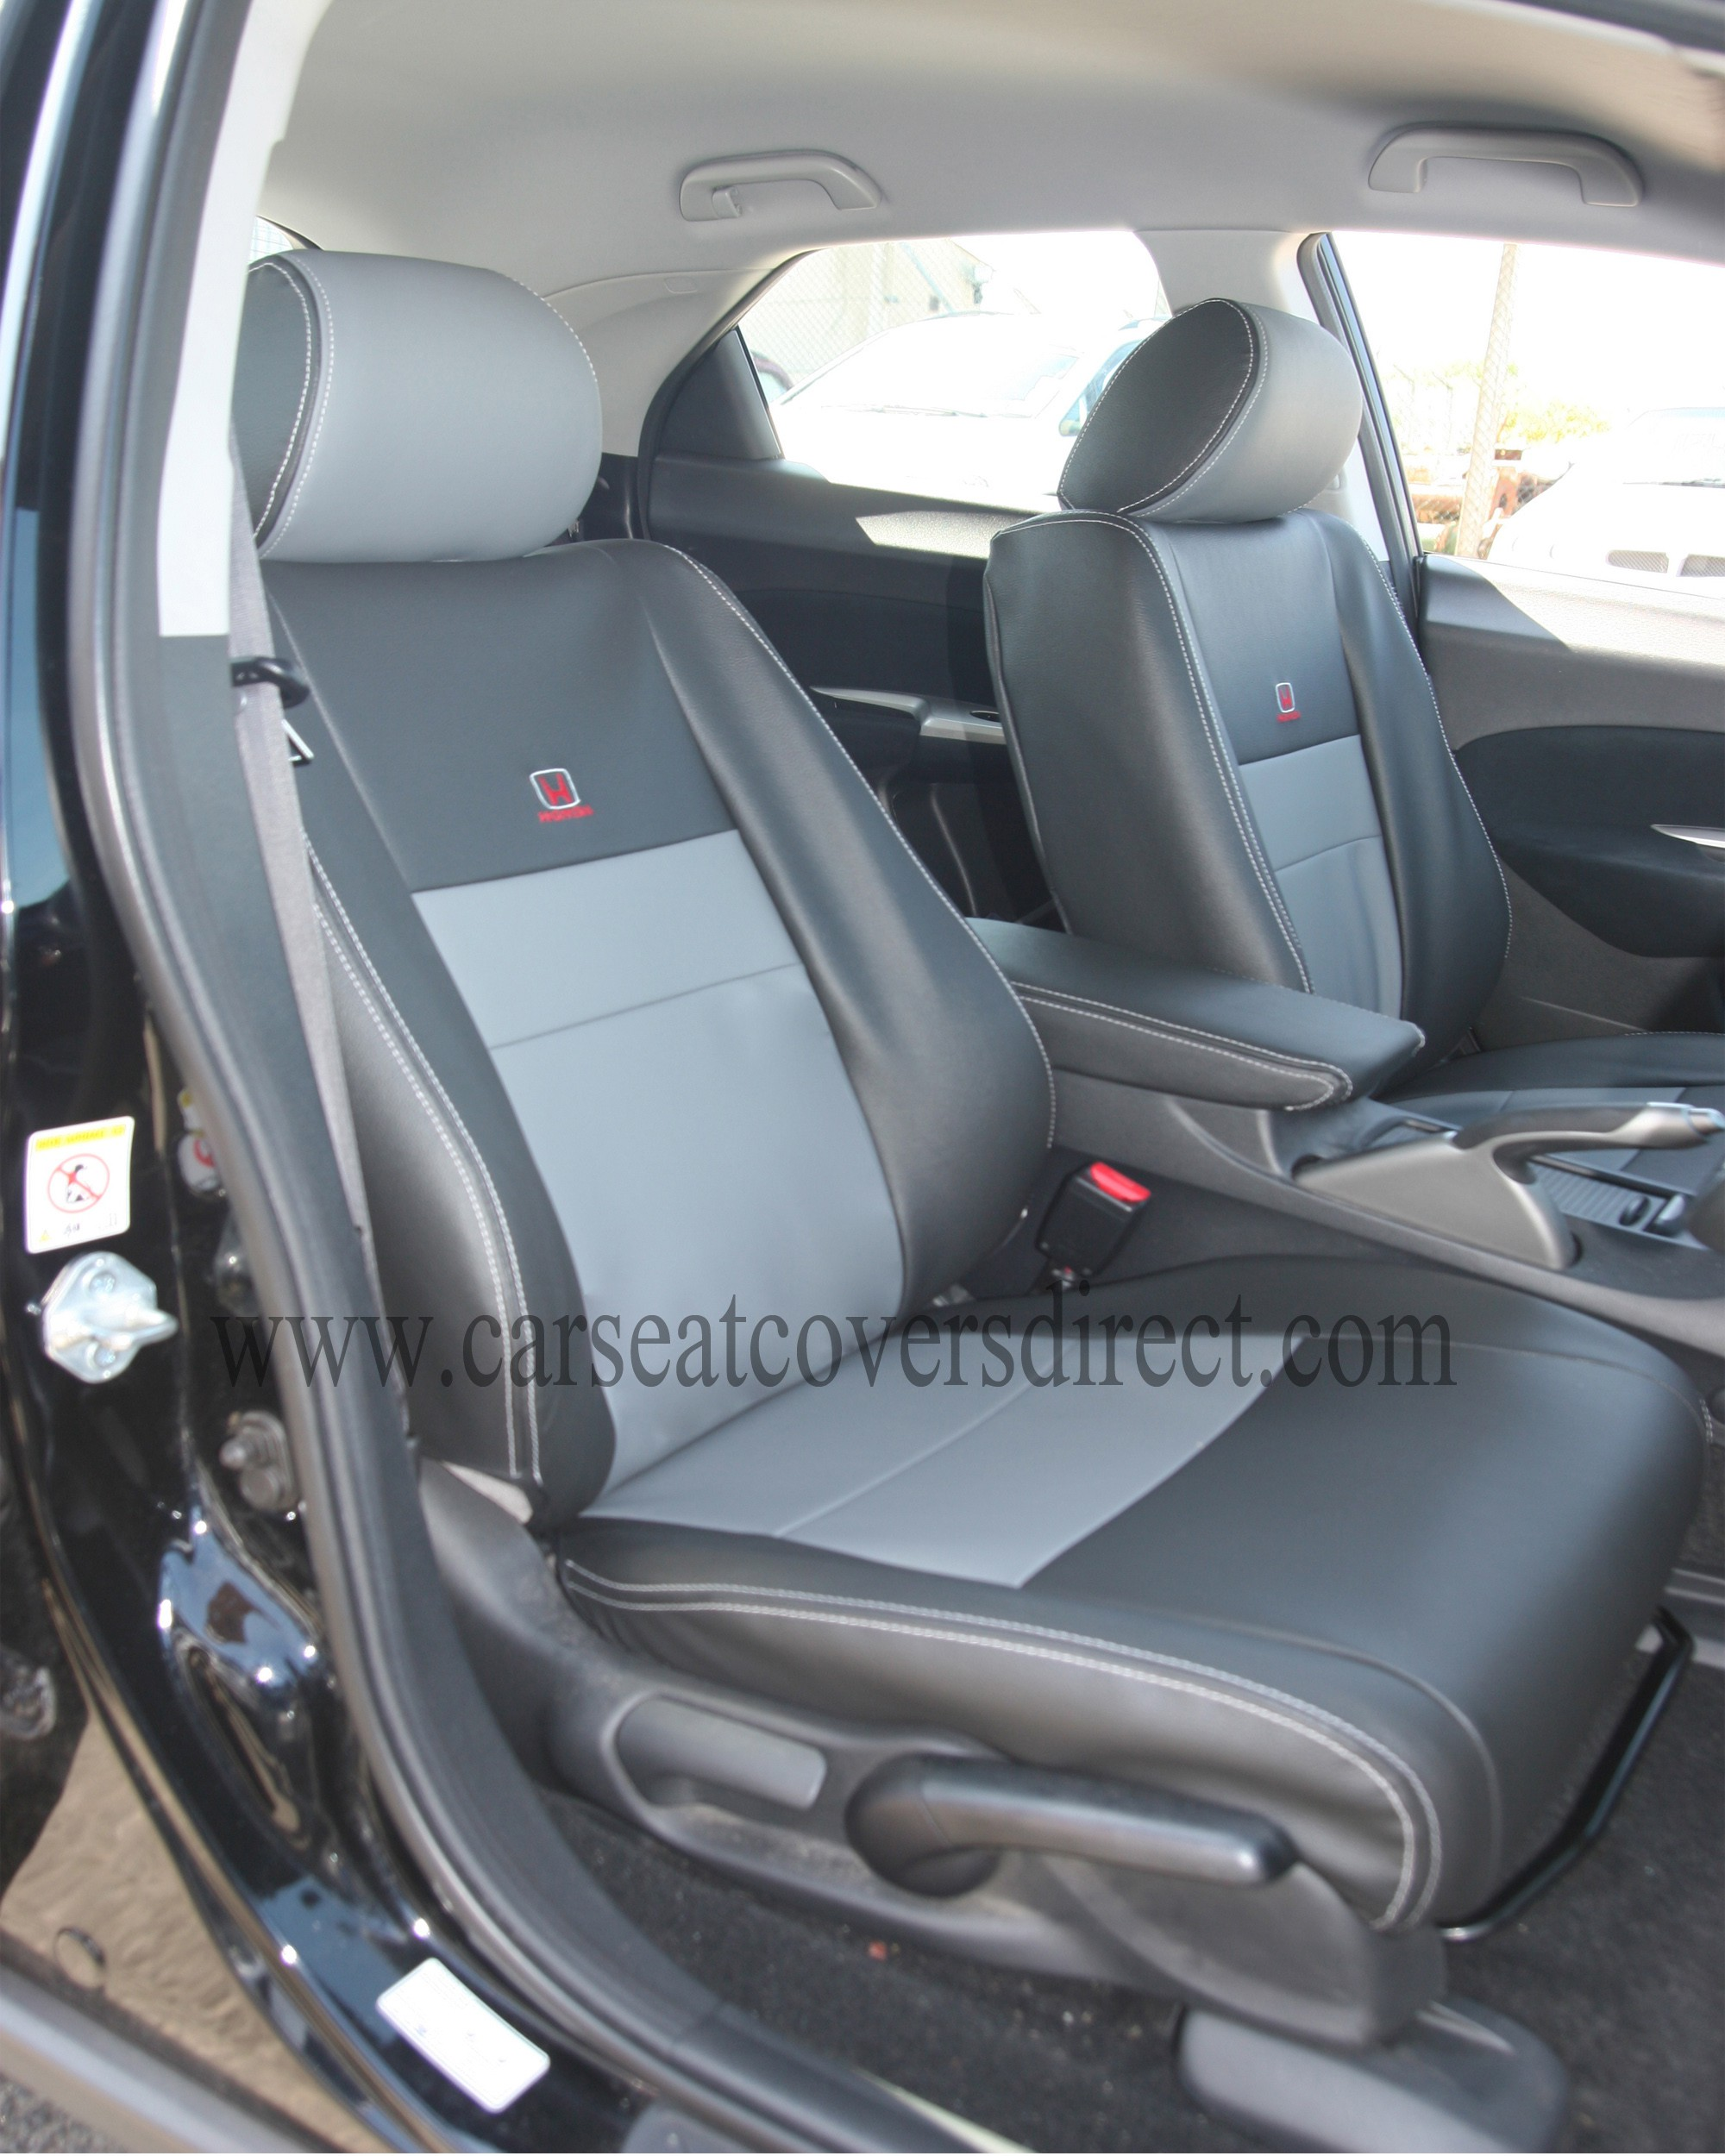 honda civic seat covers custom car seat covers custom tailored seat covers car seat covers. Black Bedroom Furniture Sets. Home Design Ideas